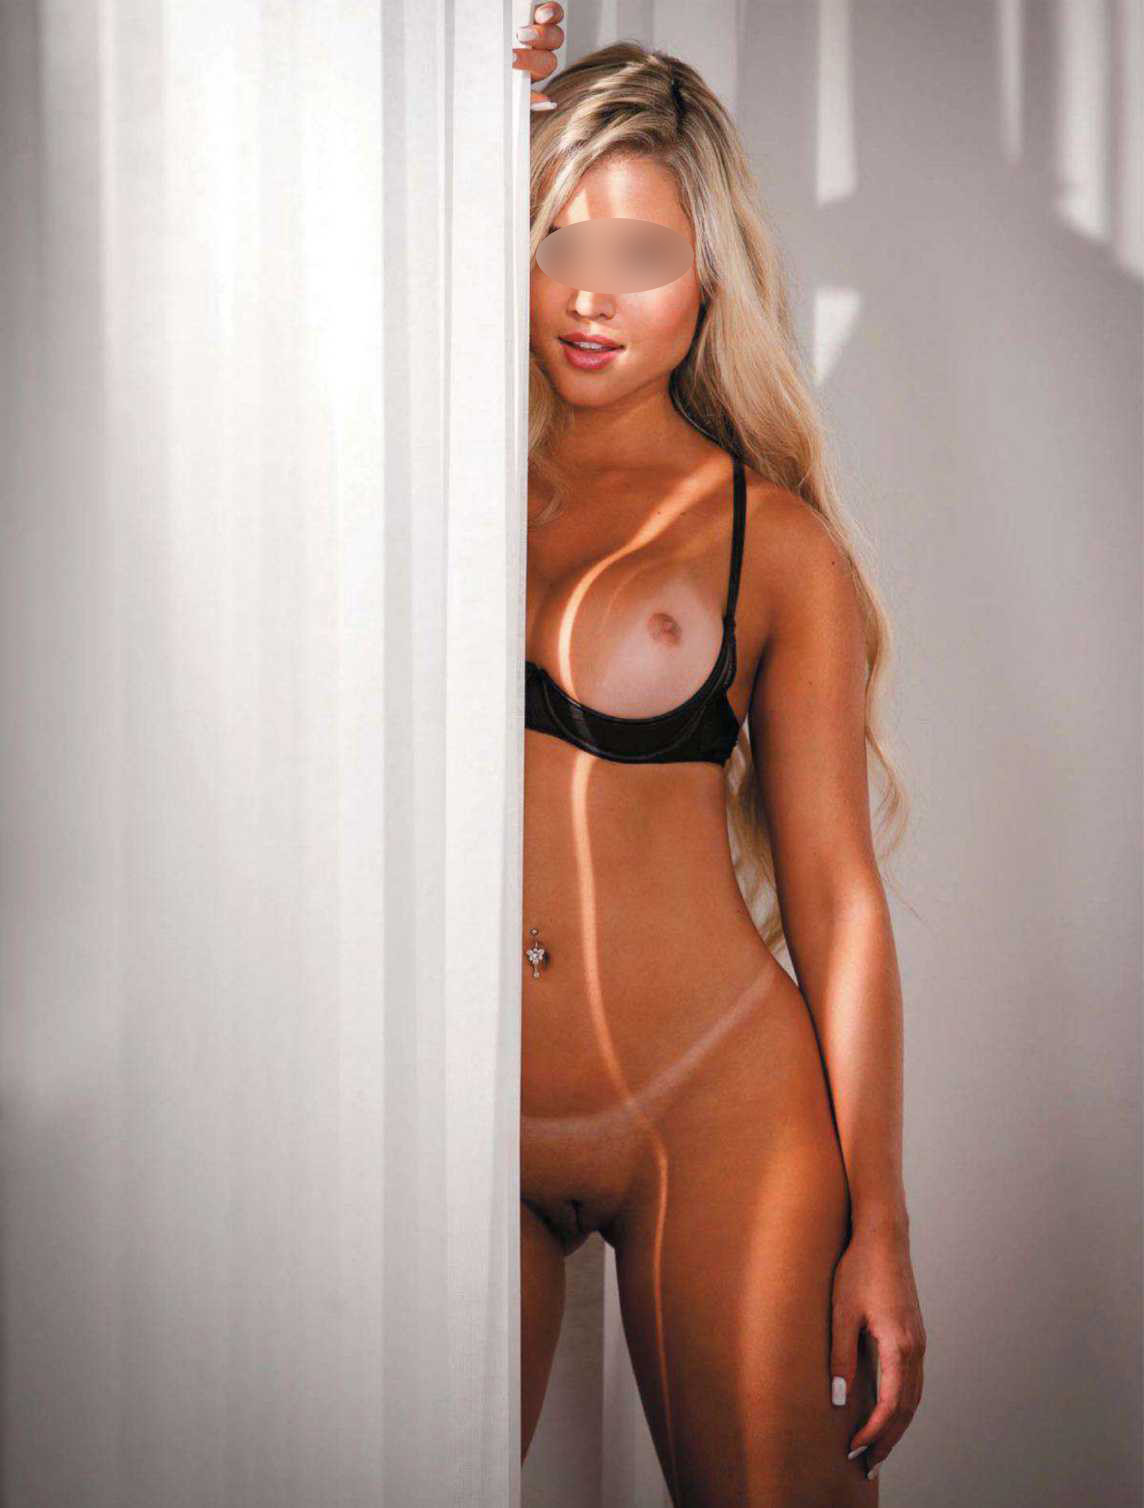 sex shop trondheim escort girls in latvia